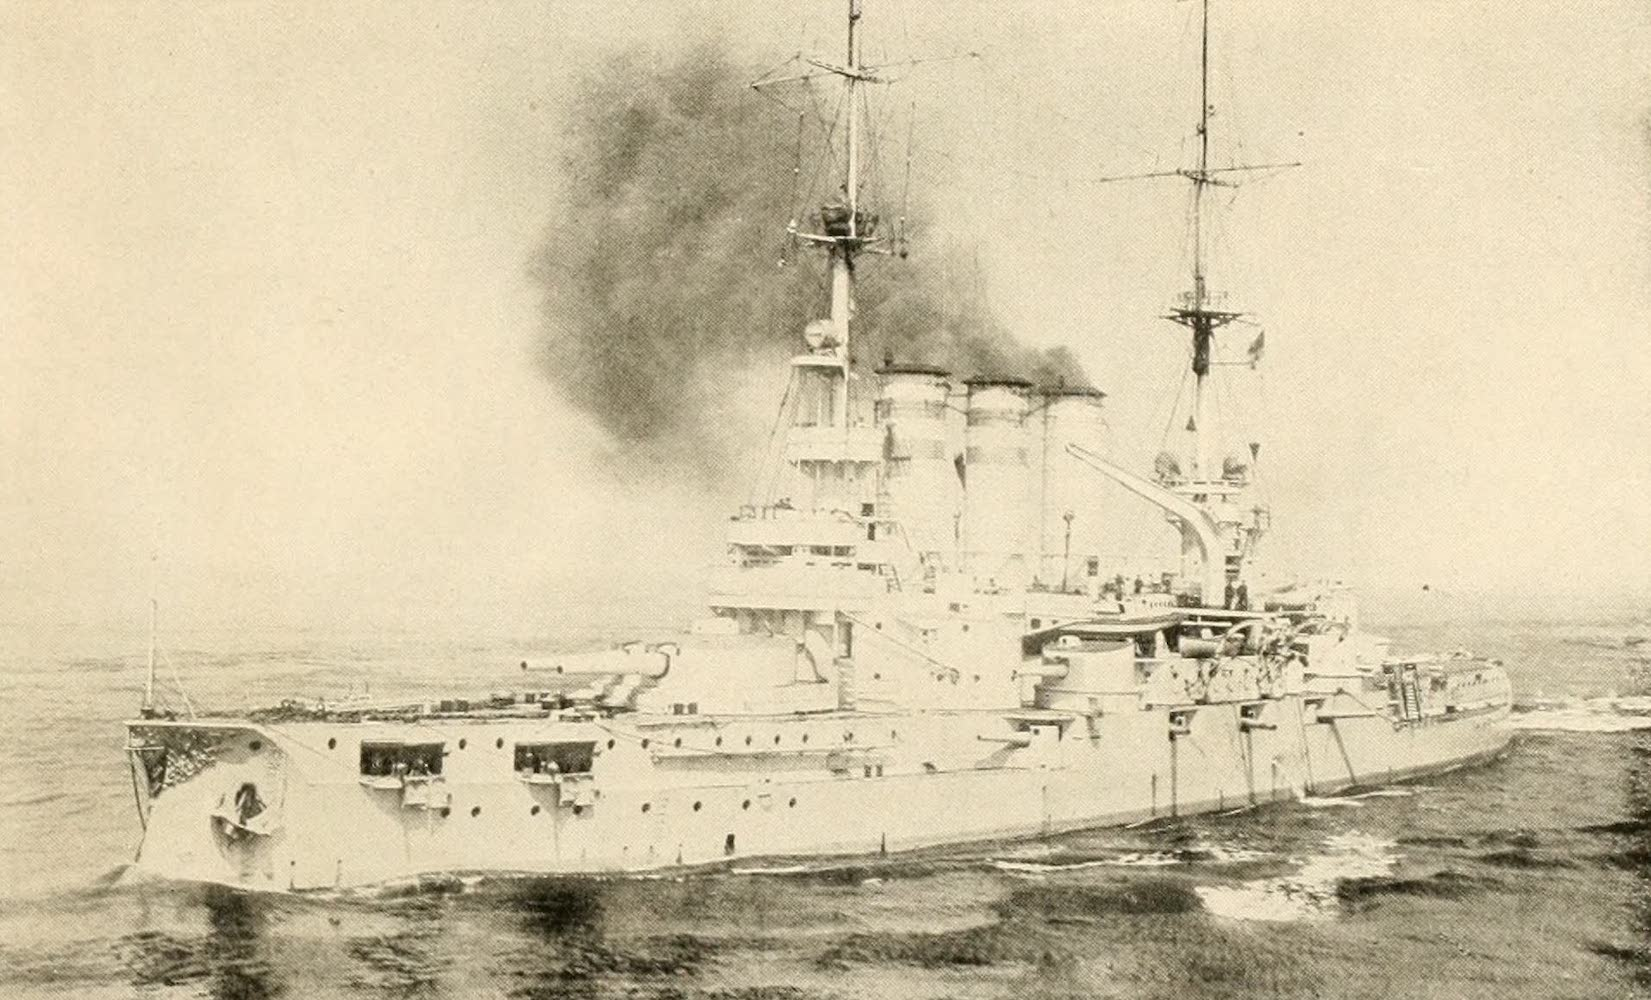 """Laird & Lee's World's War Glimpses - The """"Elsass"""" of the German Navy (1914)"""